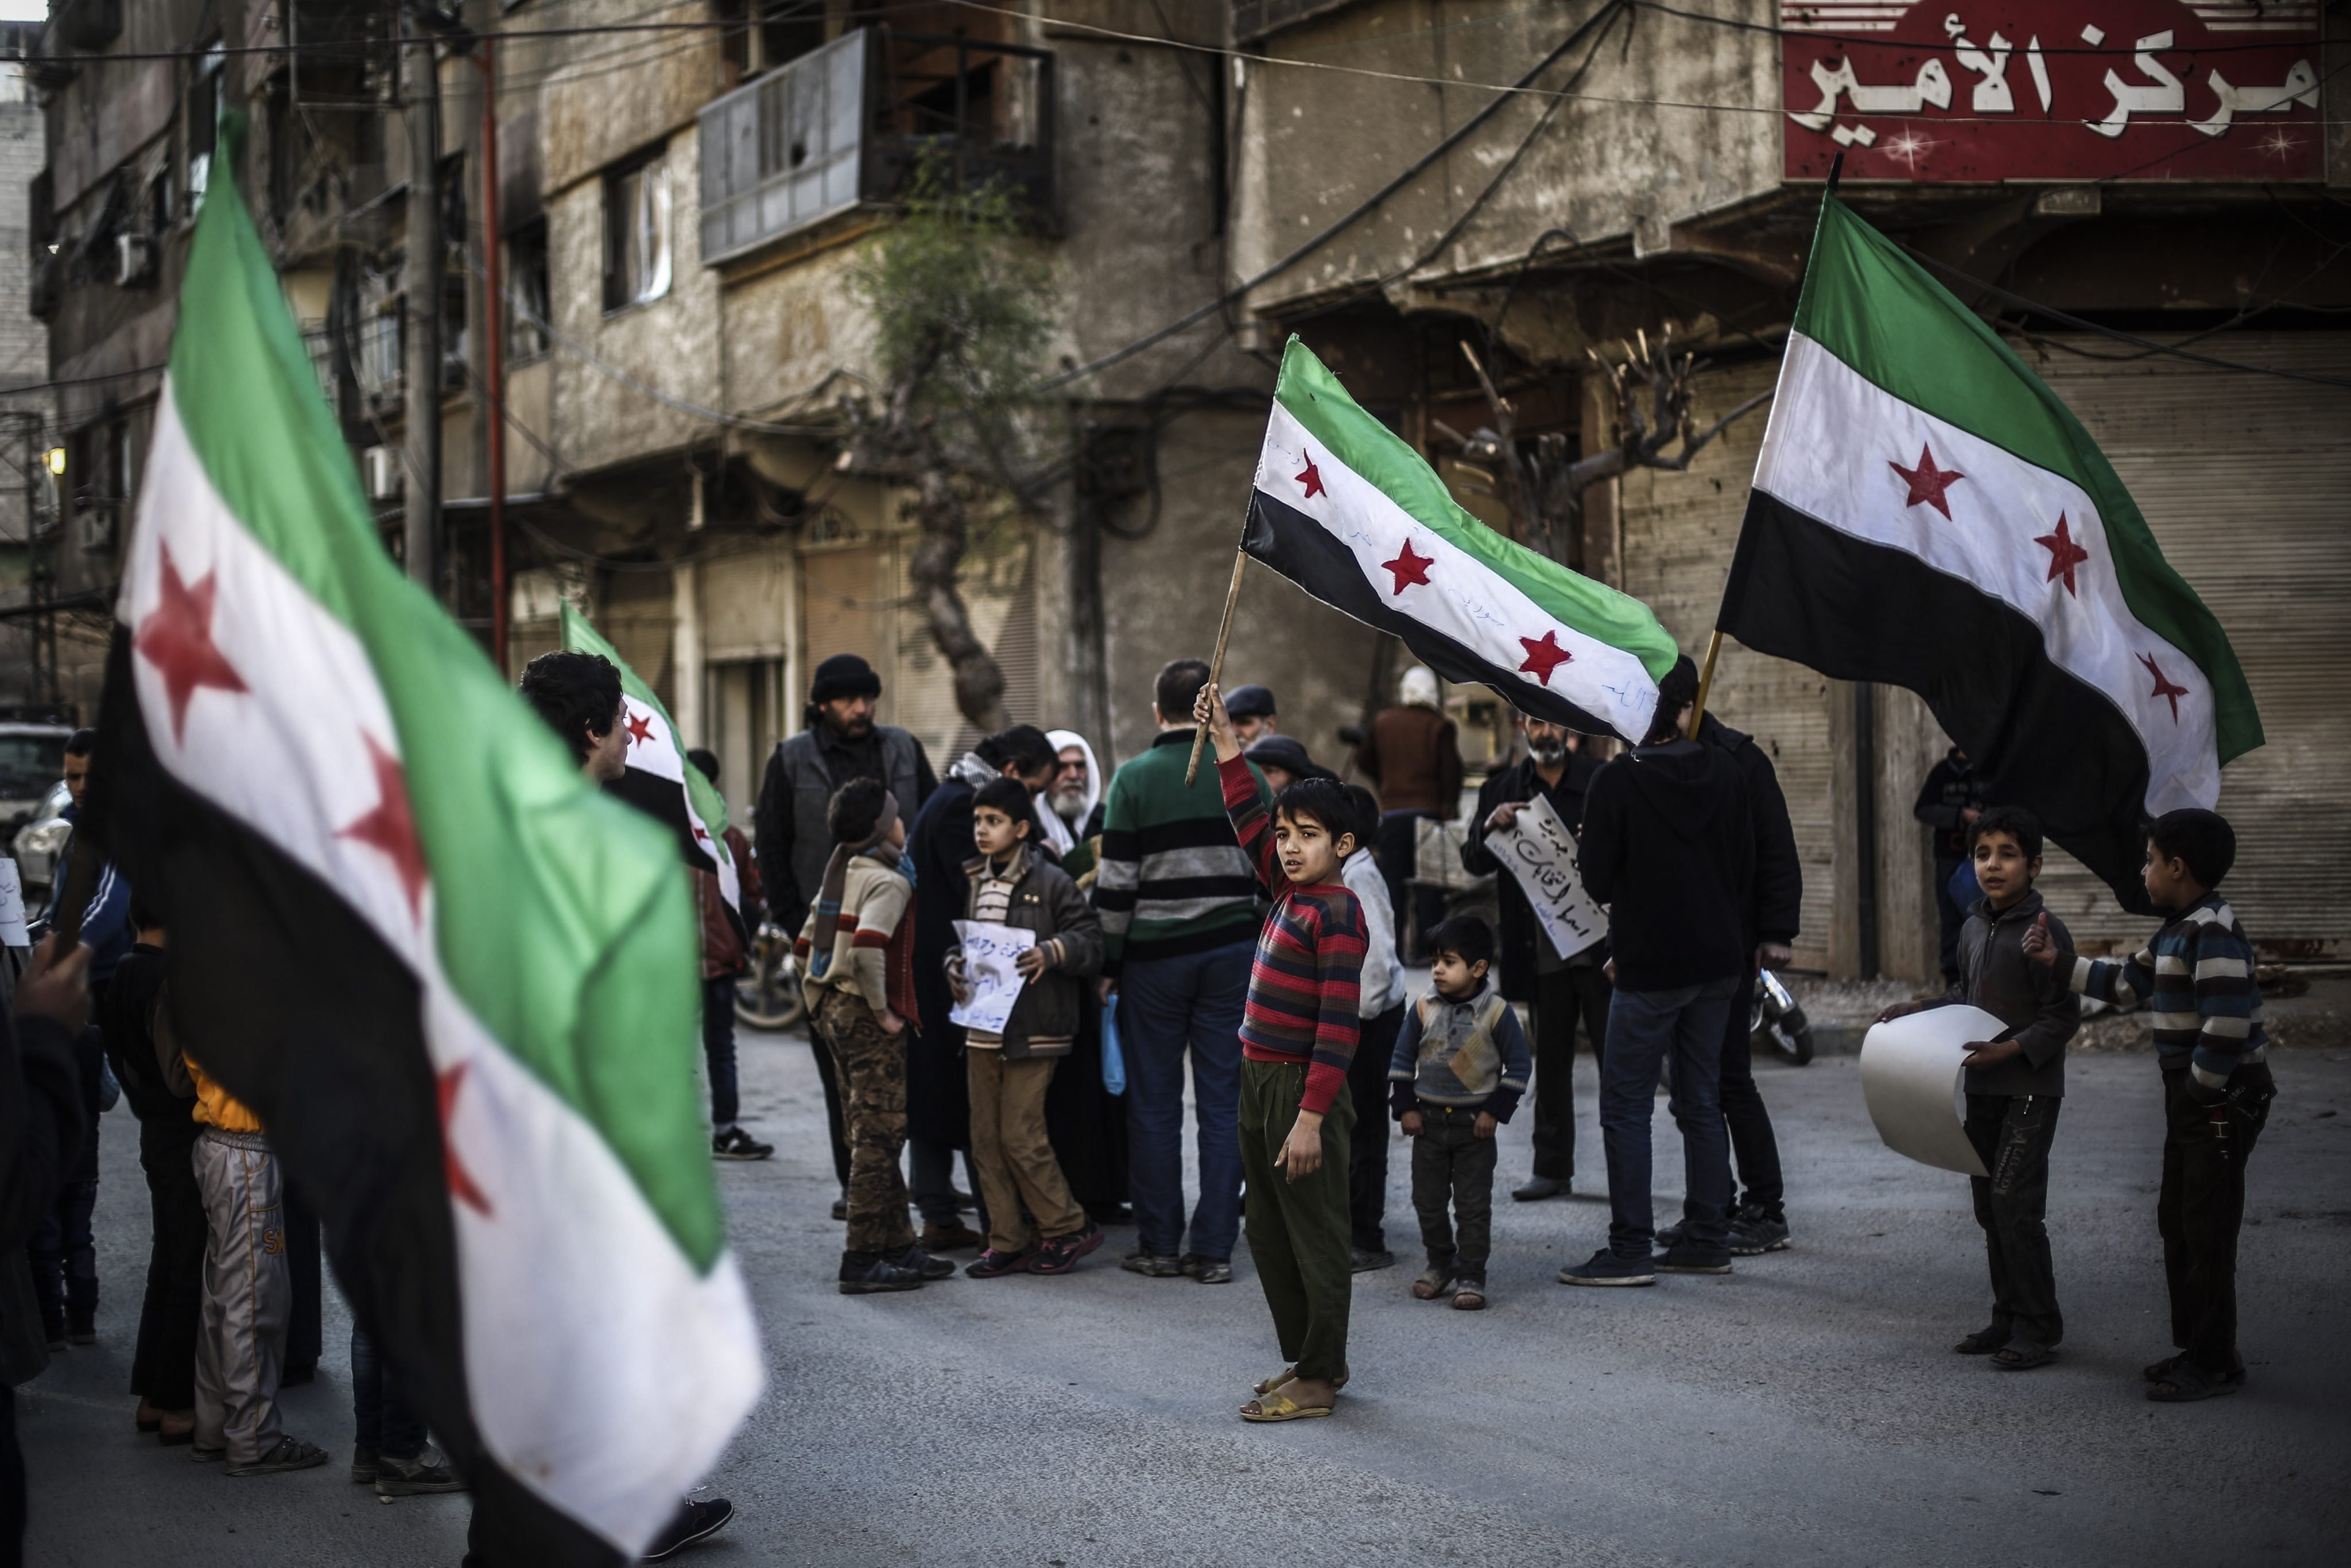 Syrians during a protest against the airstrikes which broke the Russian-US brokered ceasefire, in Douma, Syria, on March 11, 2016.